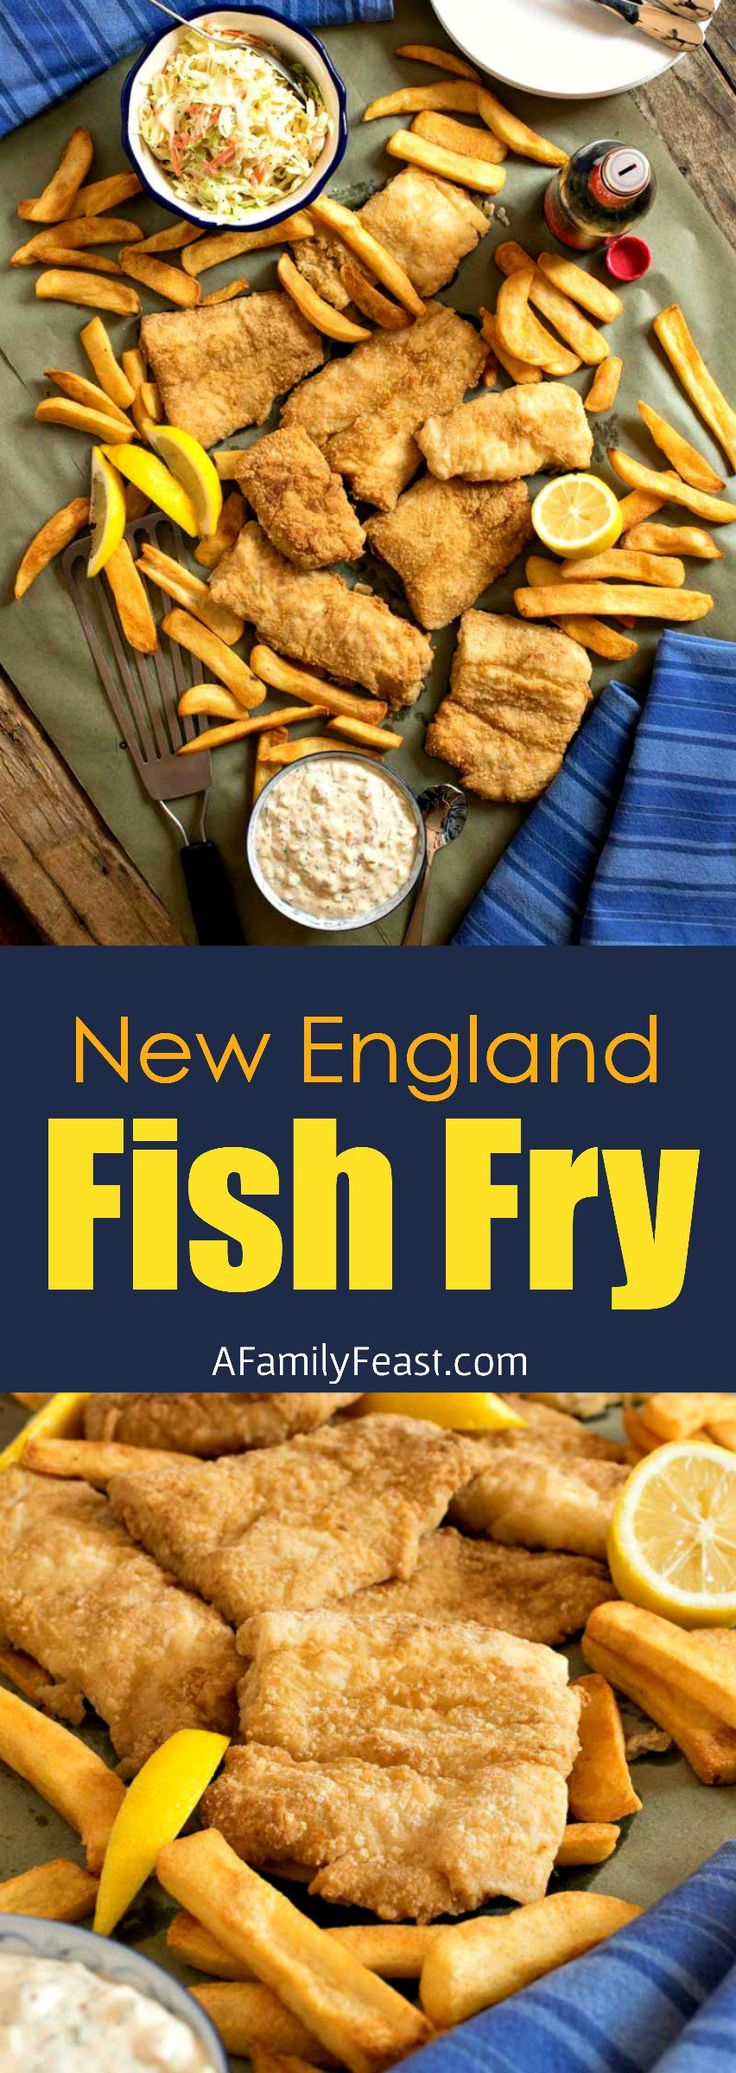 This New England Fish Fry is so good, it rivals some of the best seafood restaurants on Cape Cod! Crispy, light and tender.